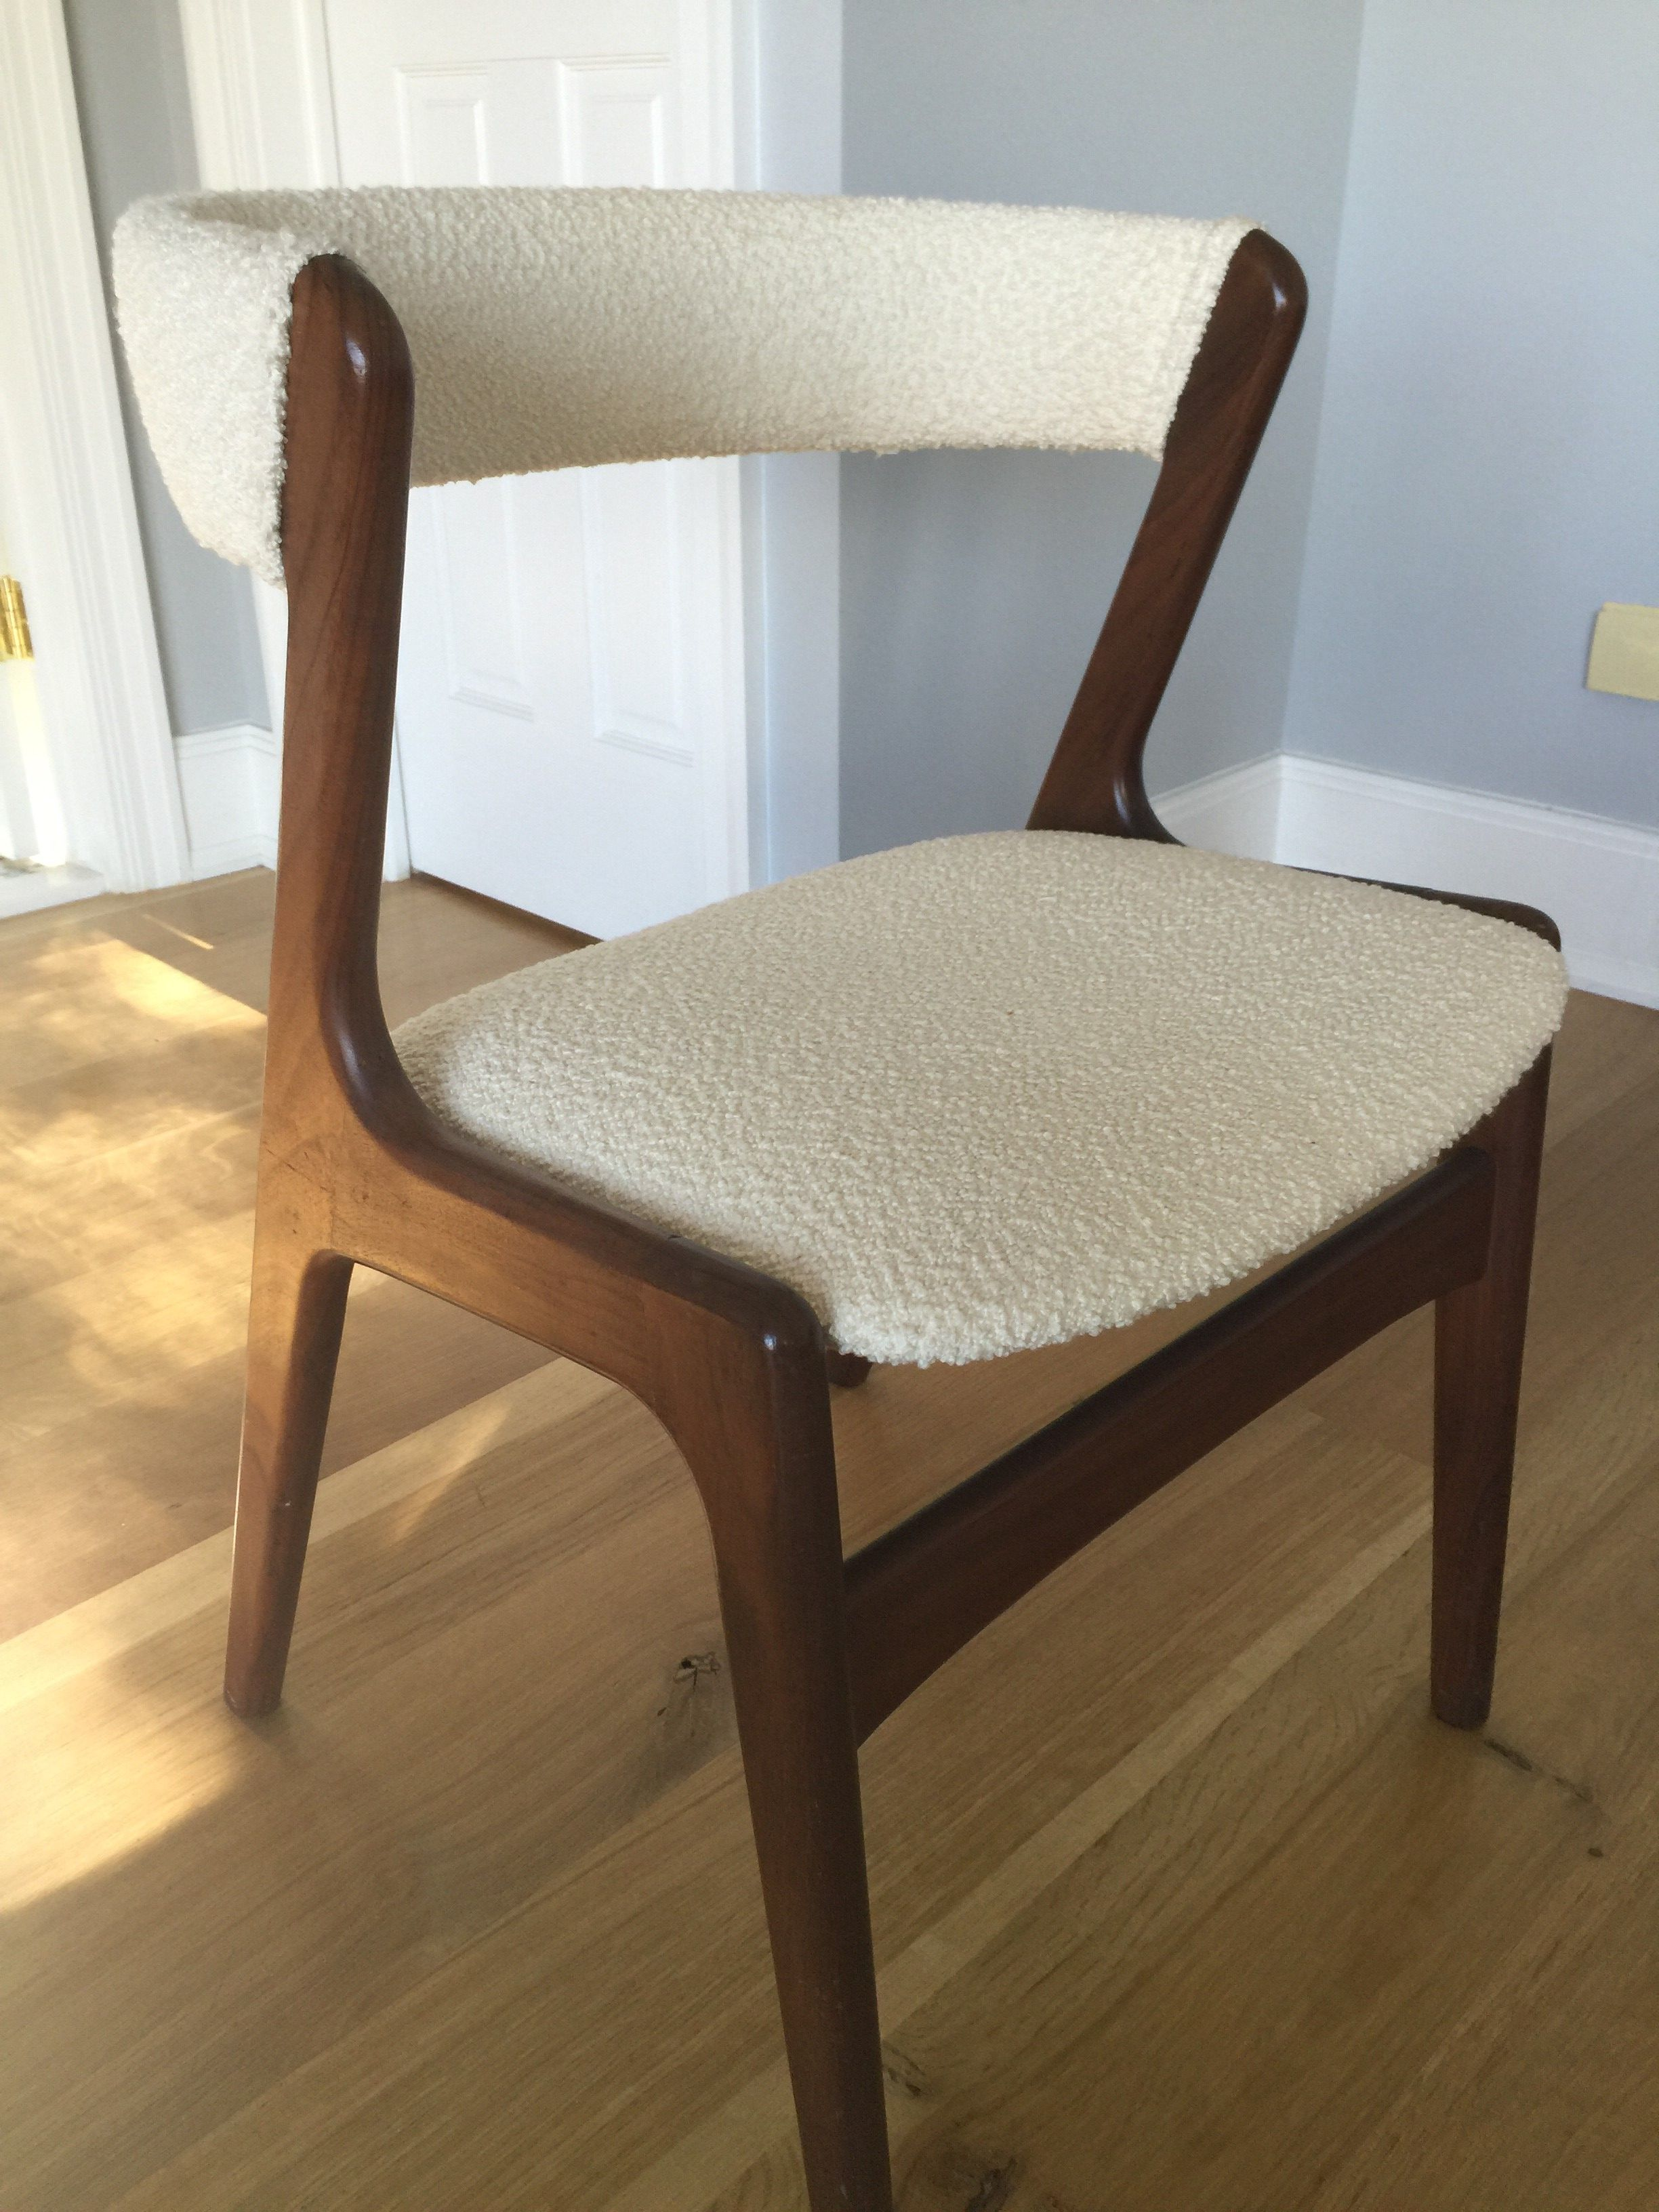 Awesome Kai Kristiansen Chair Reupholstered With Rogers Goffigon Spiritservingveterans Wood Chair Design Ideas Spiritservingveteransorg